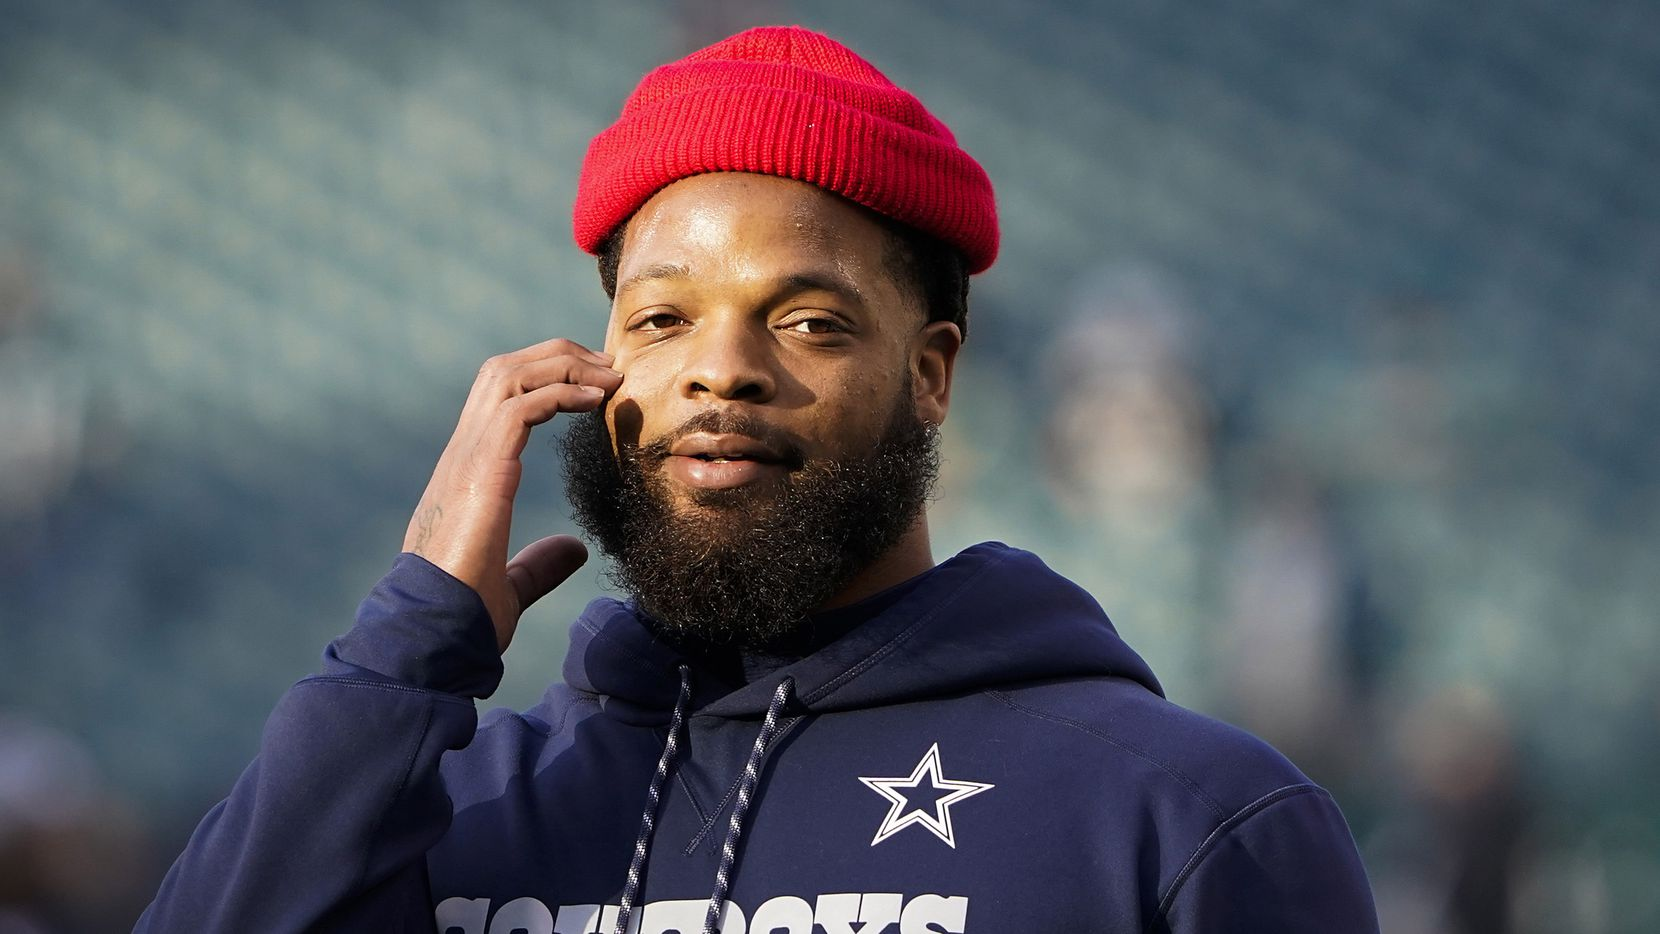 Dallas Cowboys defensive end Michael Bennett warms up before an NFL football game against the Philadelphia Eagles at Lincoln Financial Field on Sunday, Dec. 22, 2019, in Philadelphia.